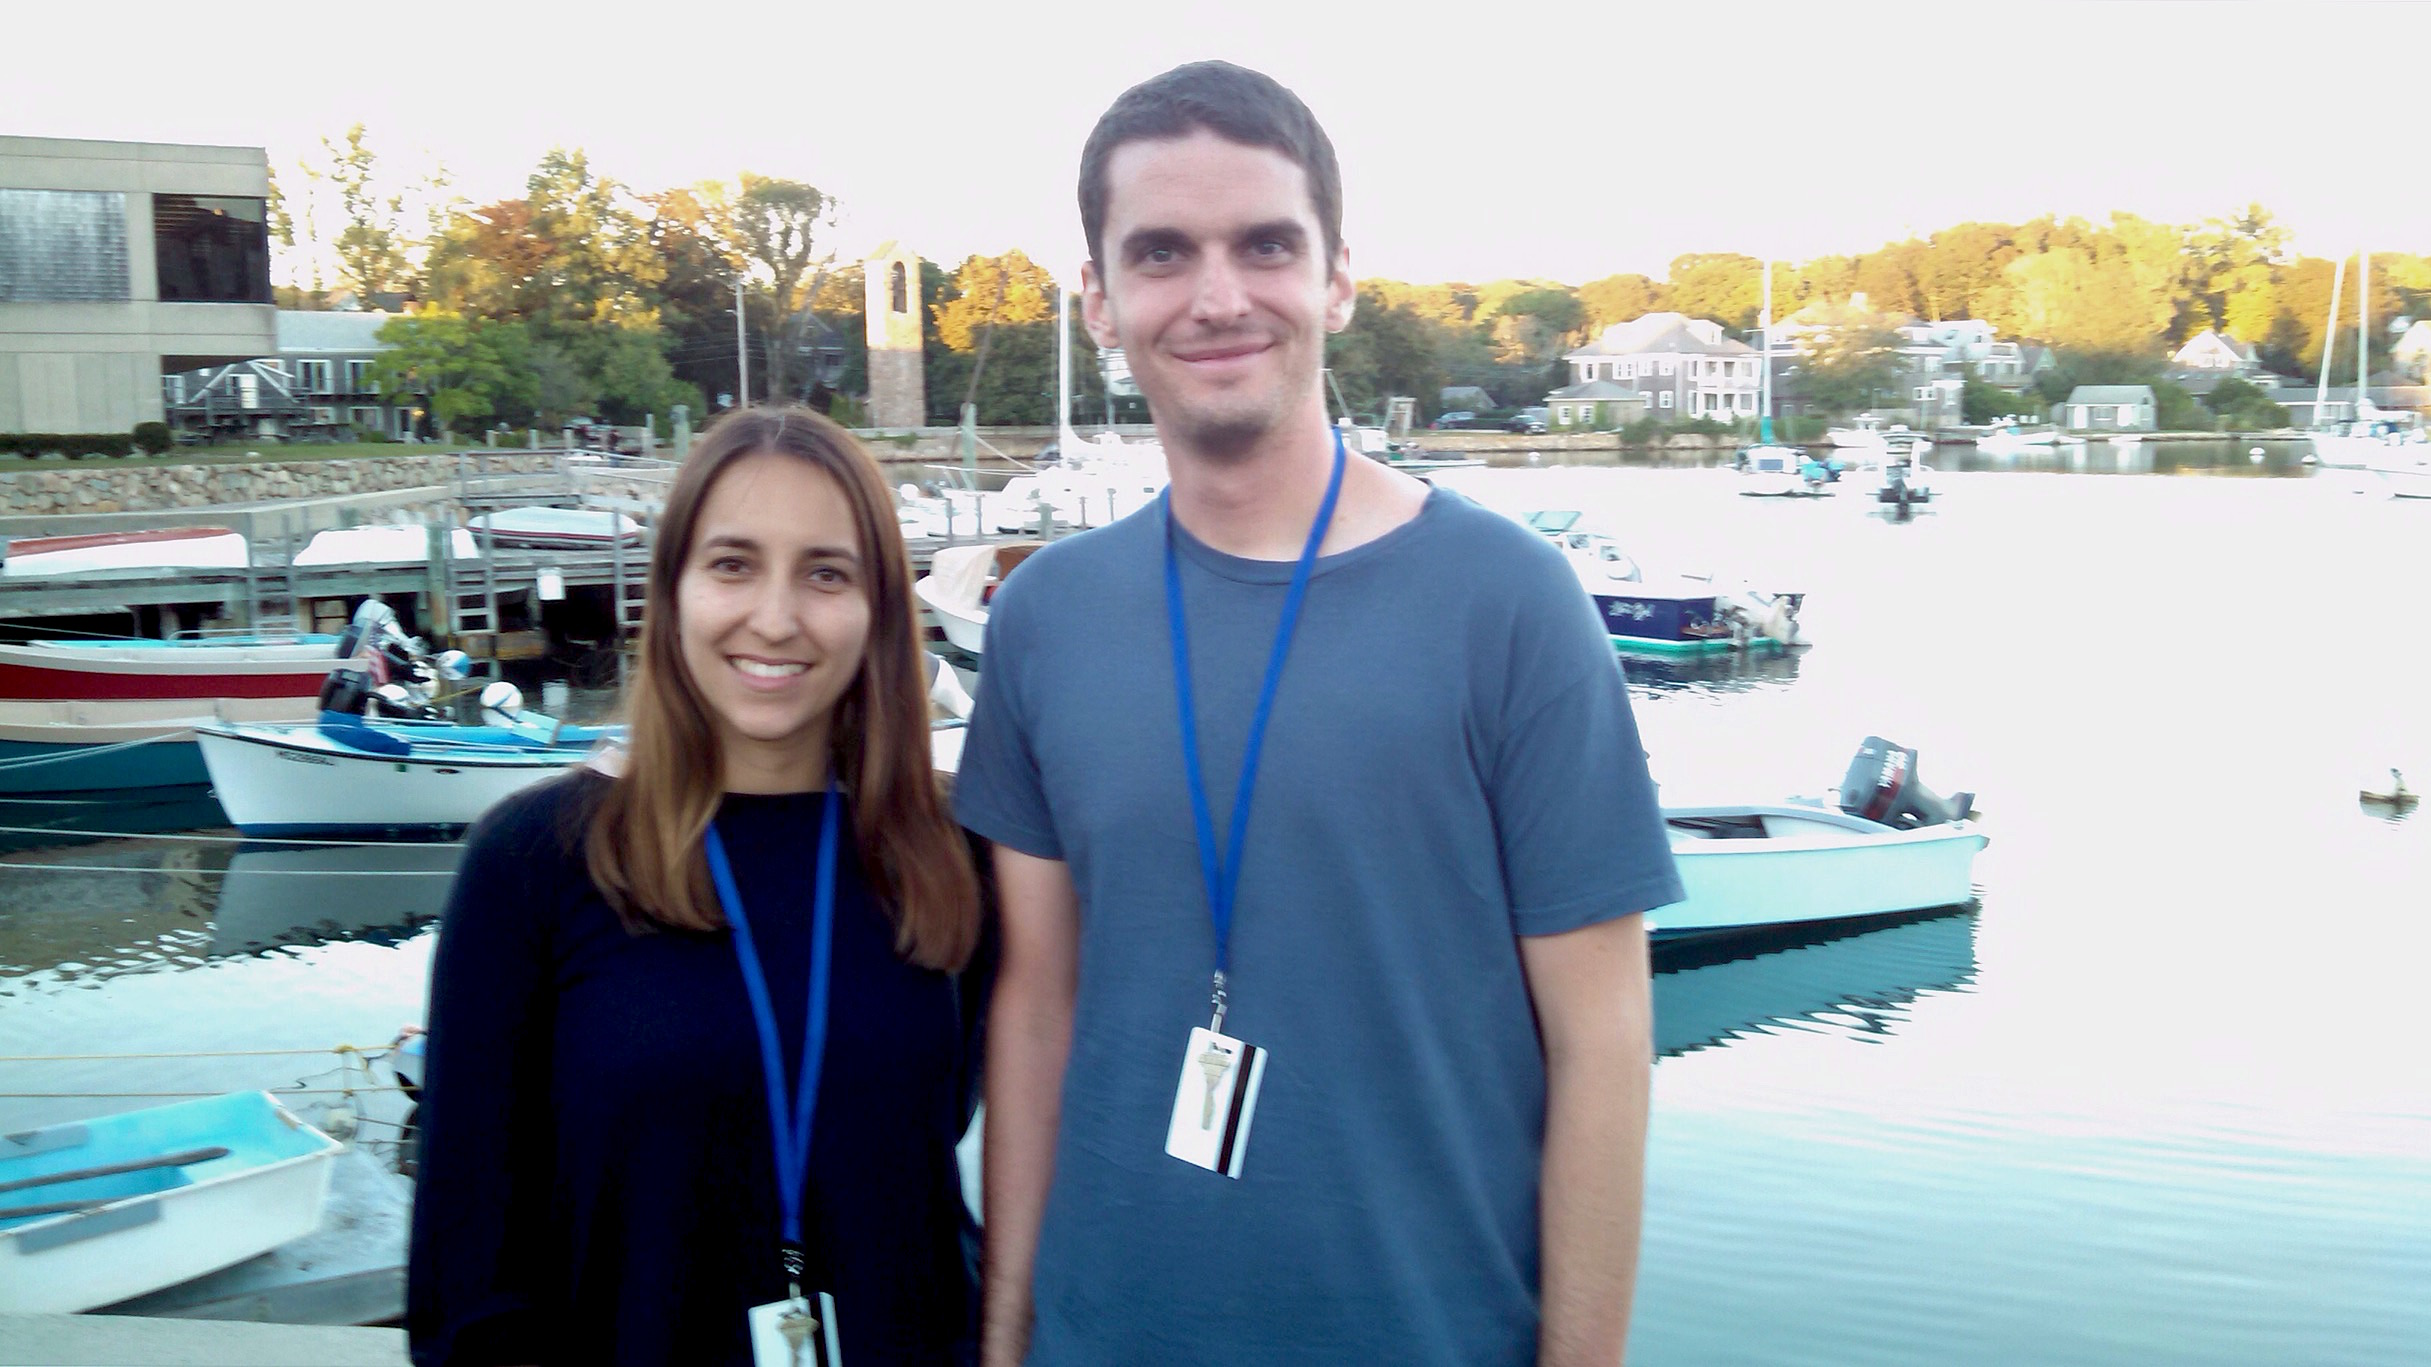 Filipa Ferreira and Tony Szempruch at Woods Hole